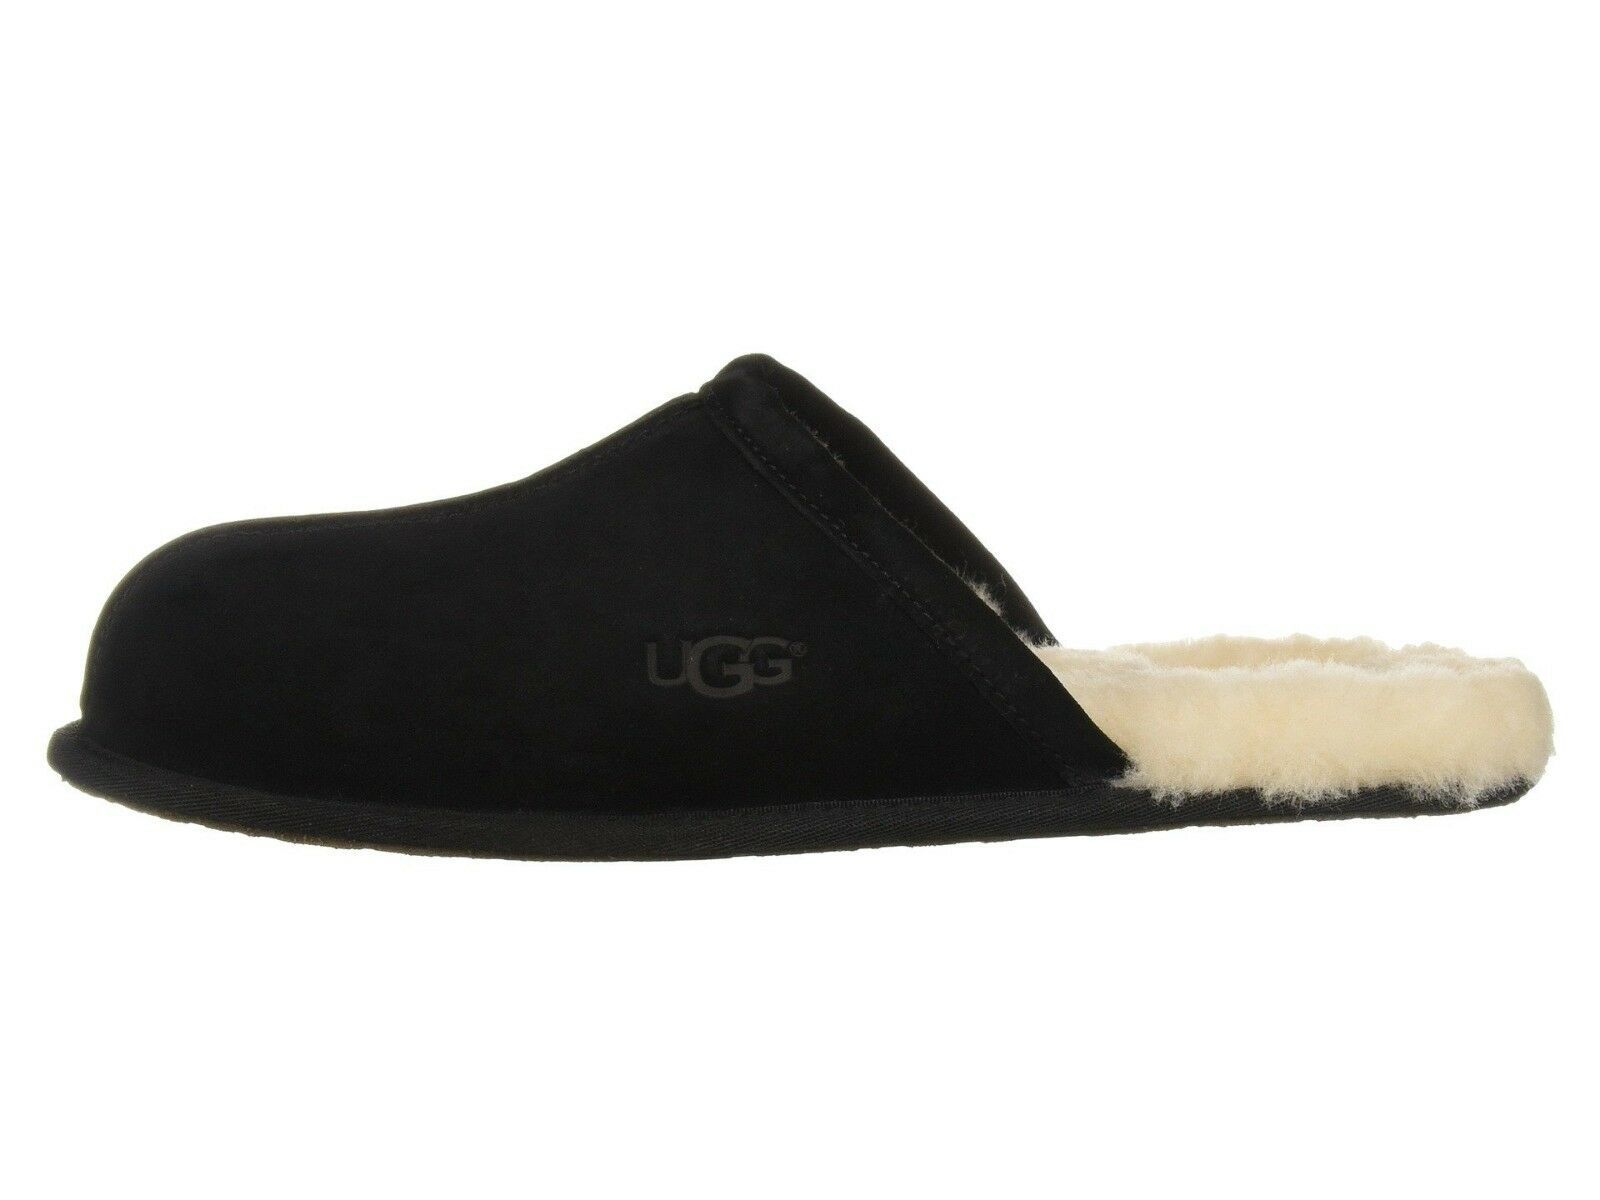 UGG Men's SCUFF Casual Comfort Suede Slip On Slippers BLACK 1101111